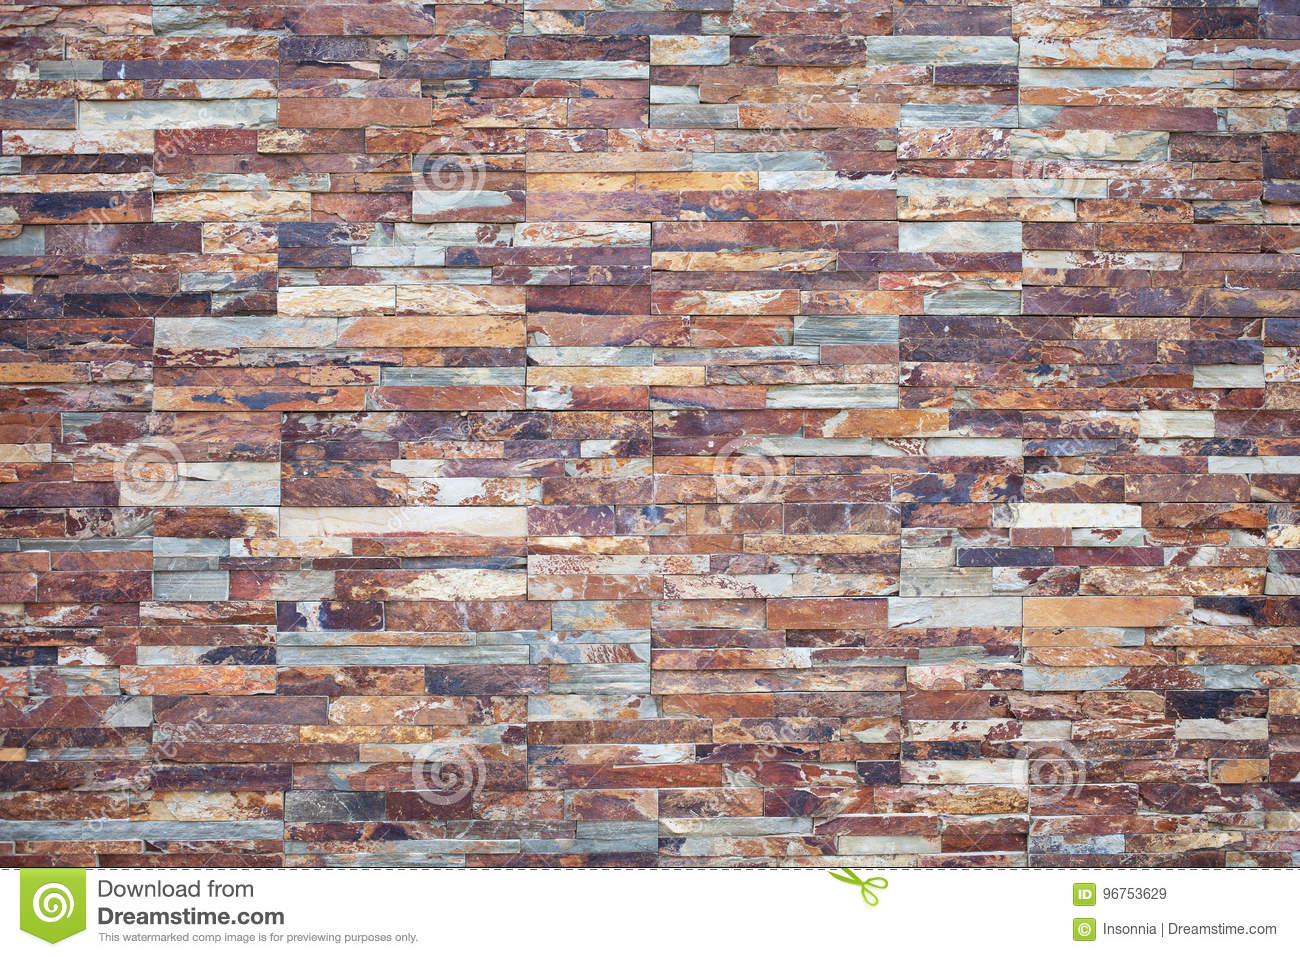 Rusty Stone Stone Veneer For Exterior Wall Decor Stock Image Image Of Level Brown 96753629